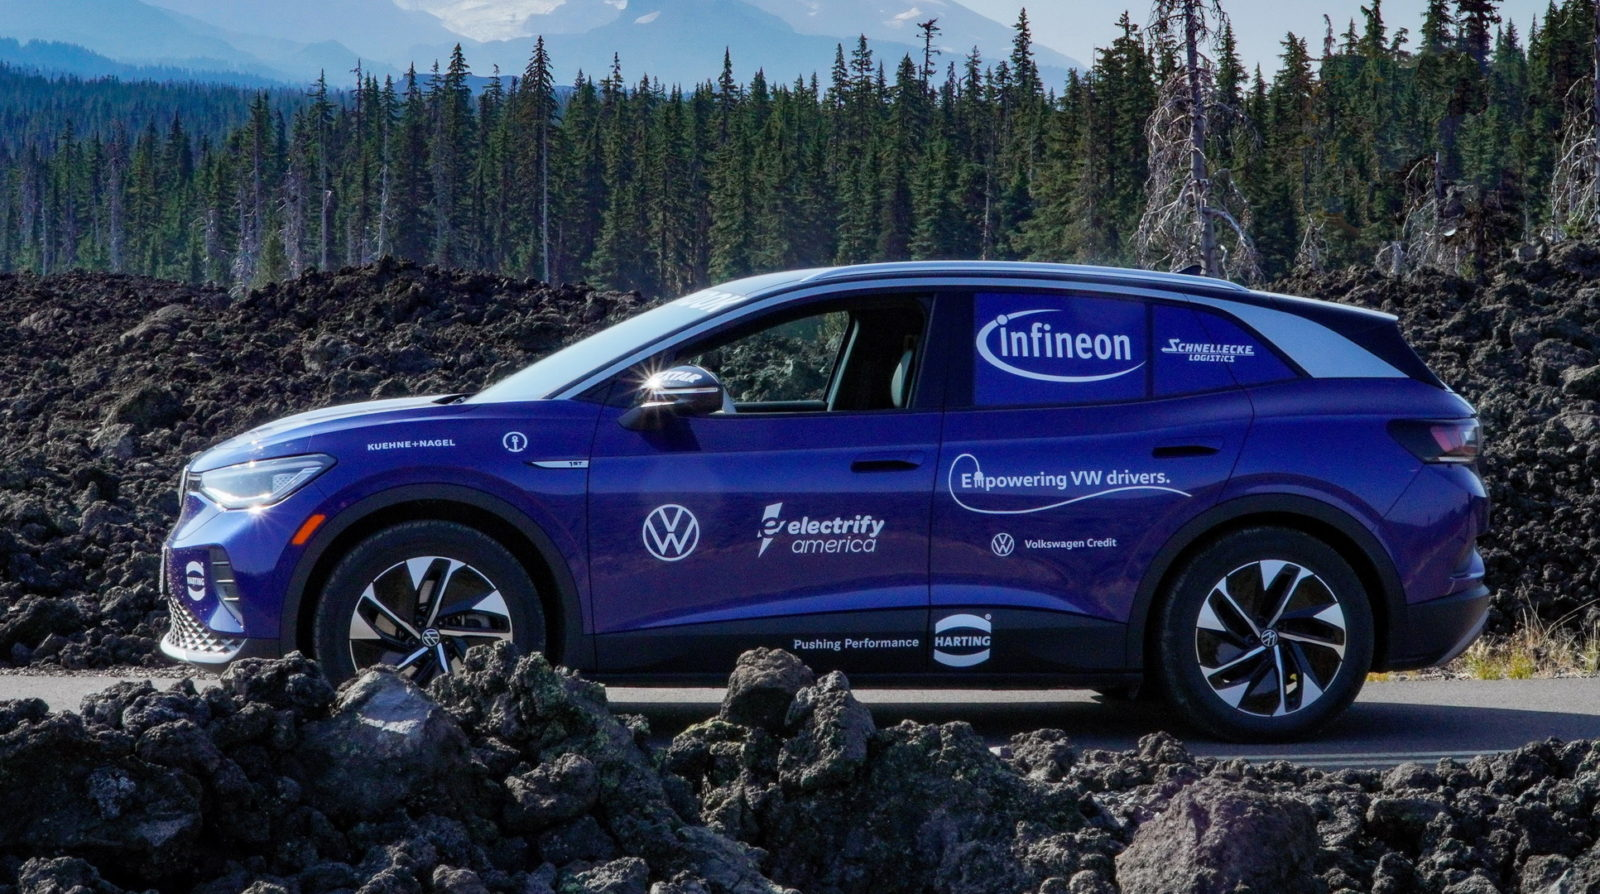 vw-id.4-travels-coast-to-coast-visiting-418-dealerships,-stops-116-times-to-recharge